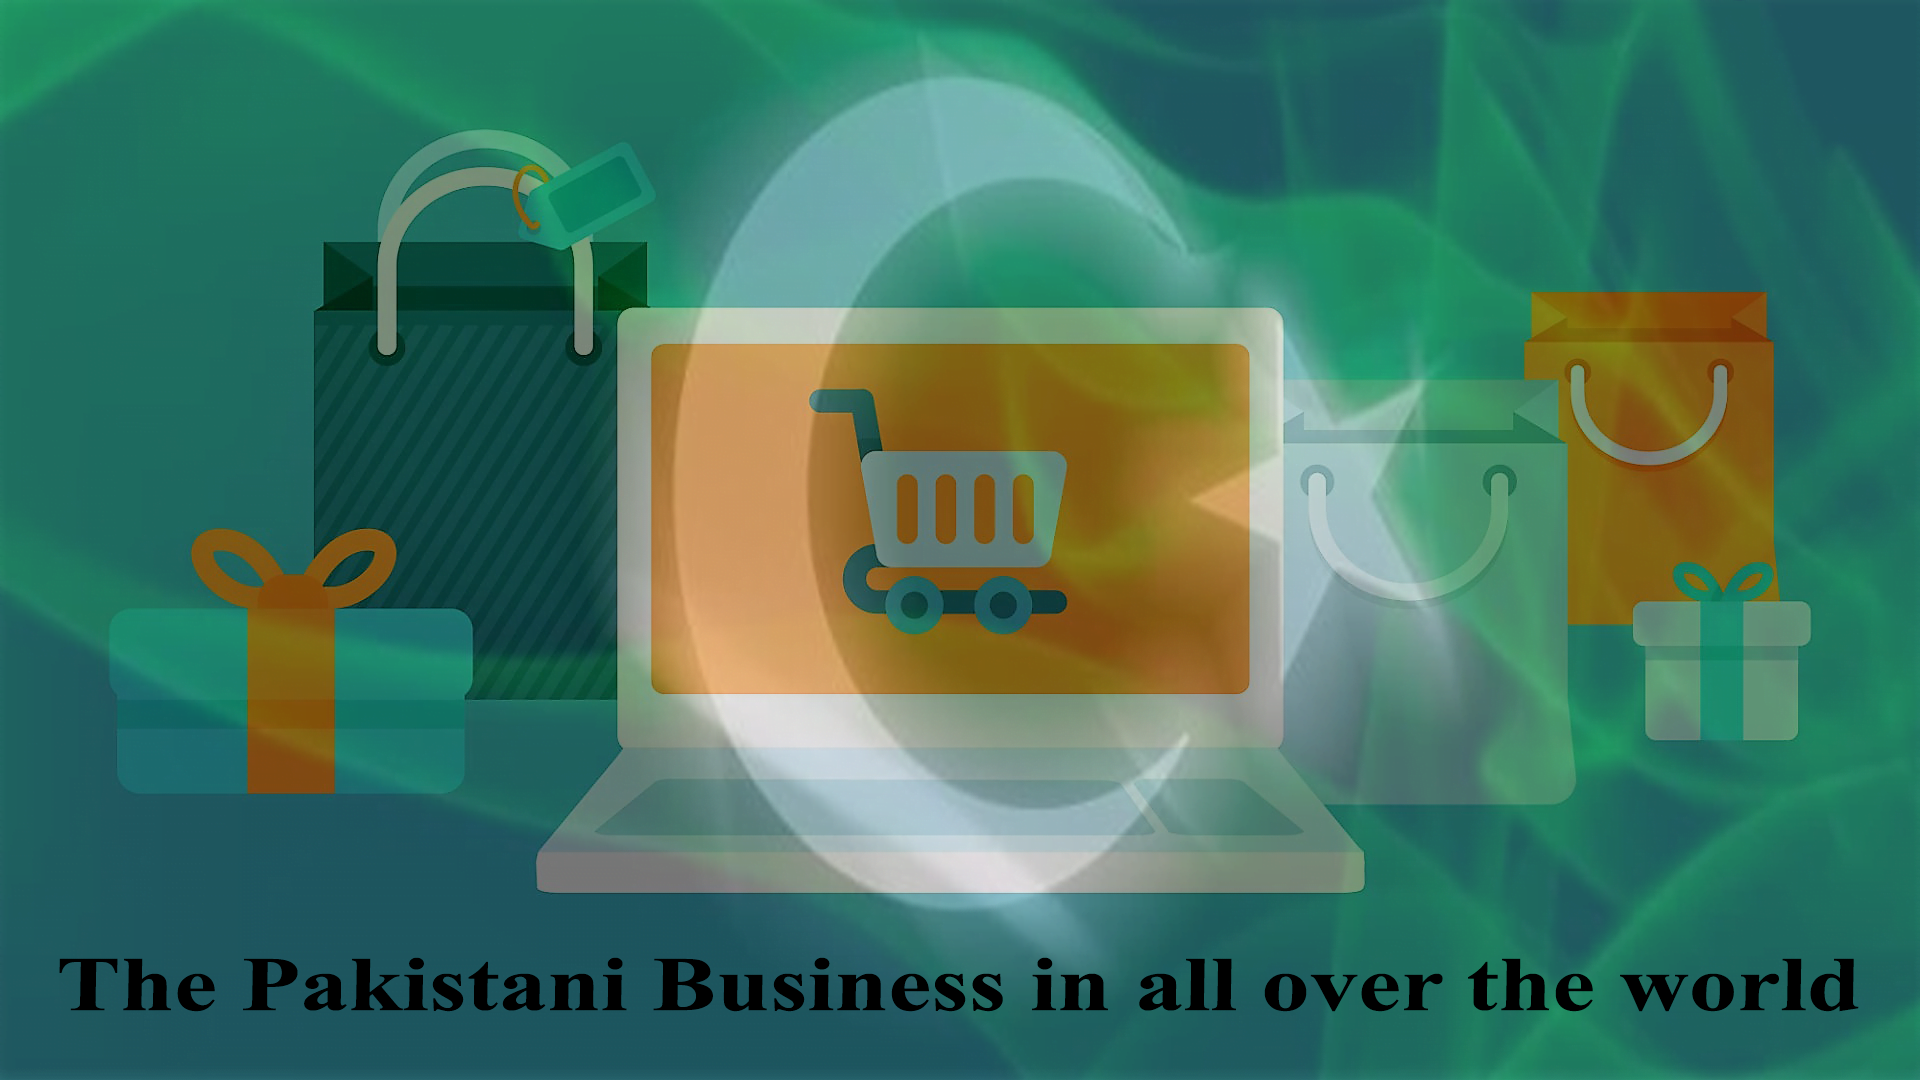 Pakistan's E-commerce market size to grow up to $ 1 billion by 2020